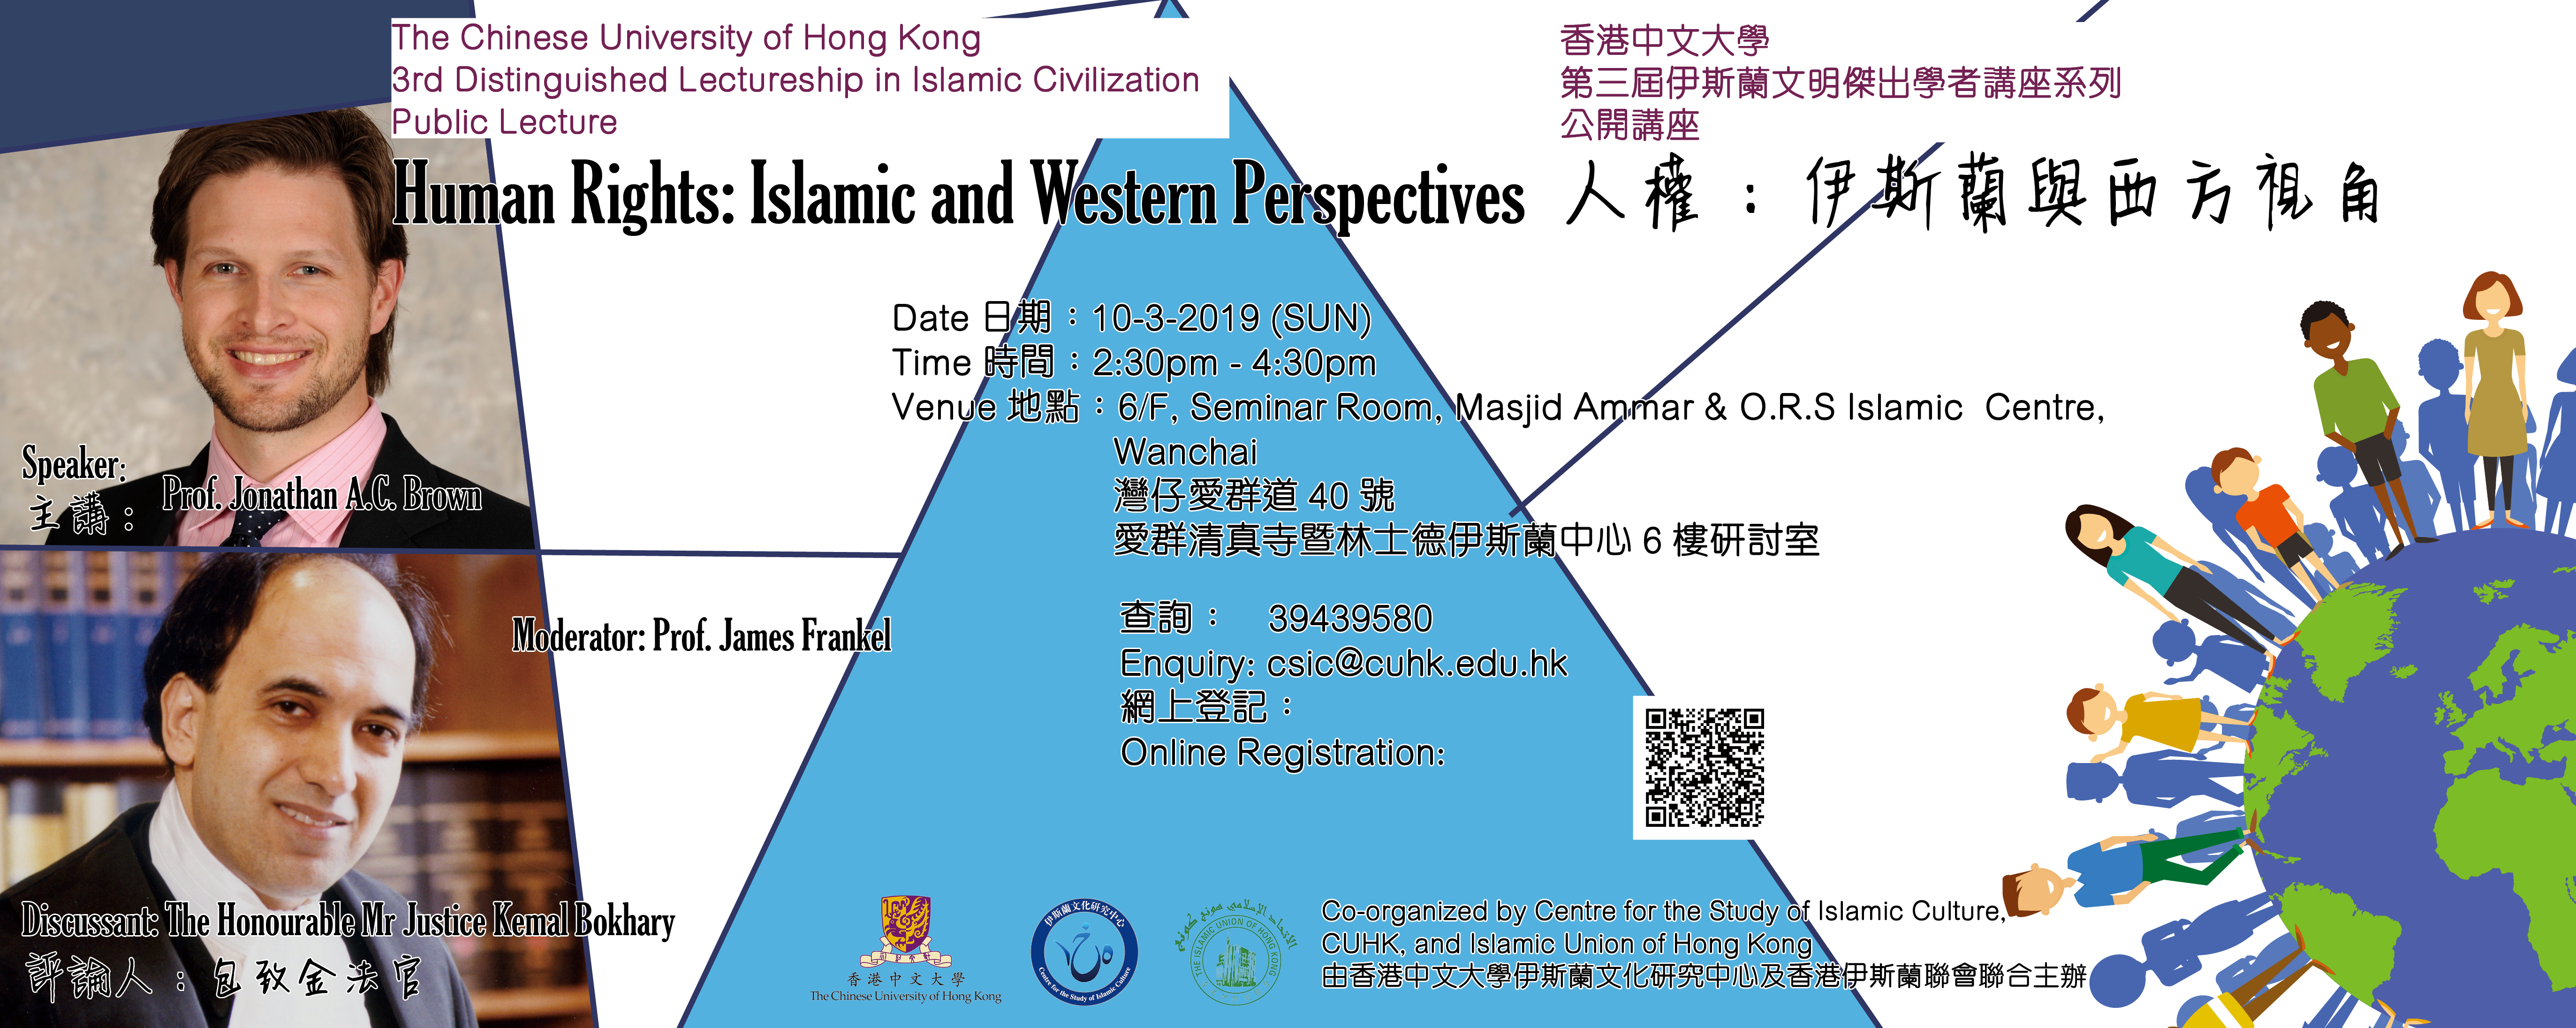 Human Rights: Islamic and Western Perspectives